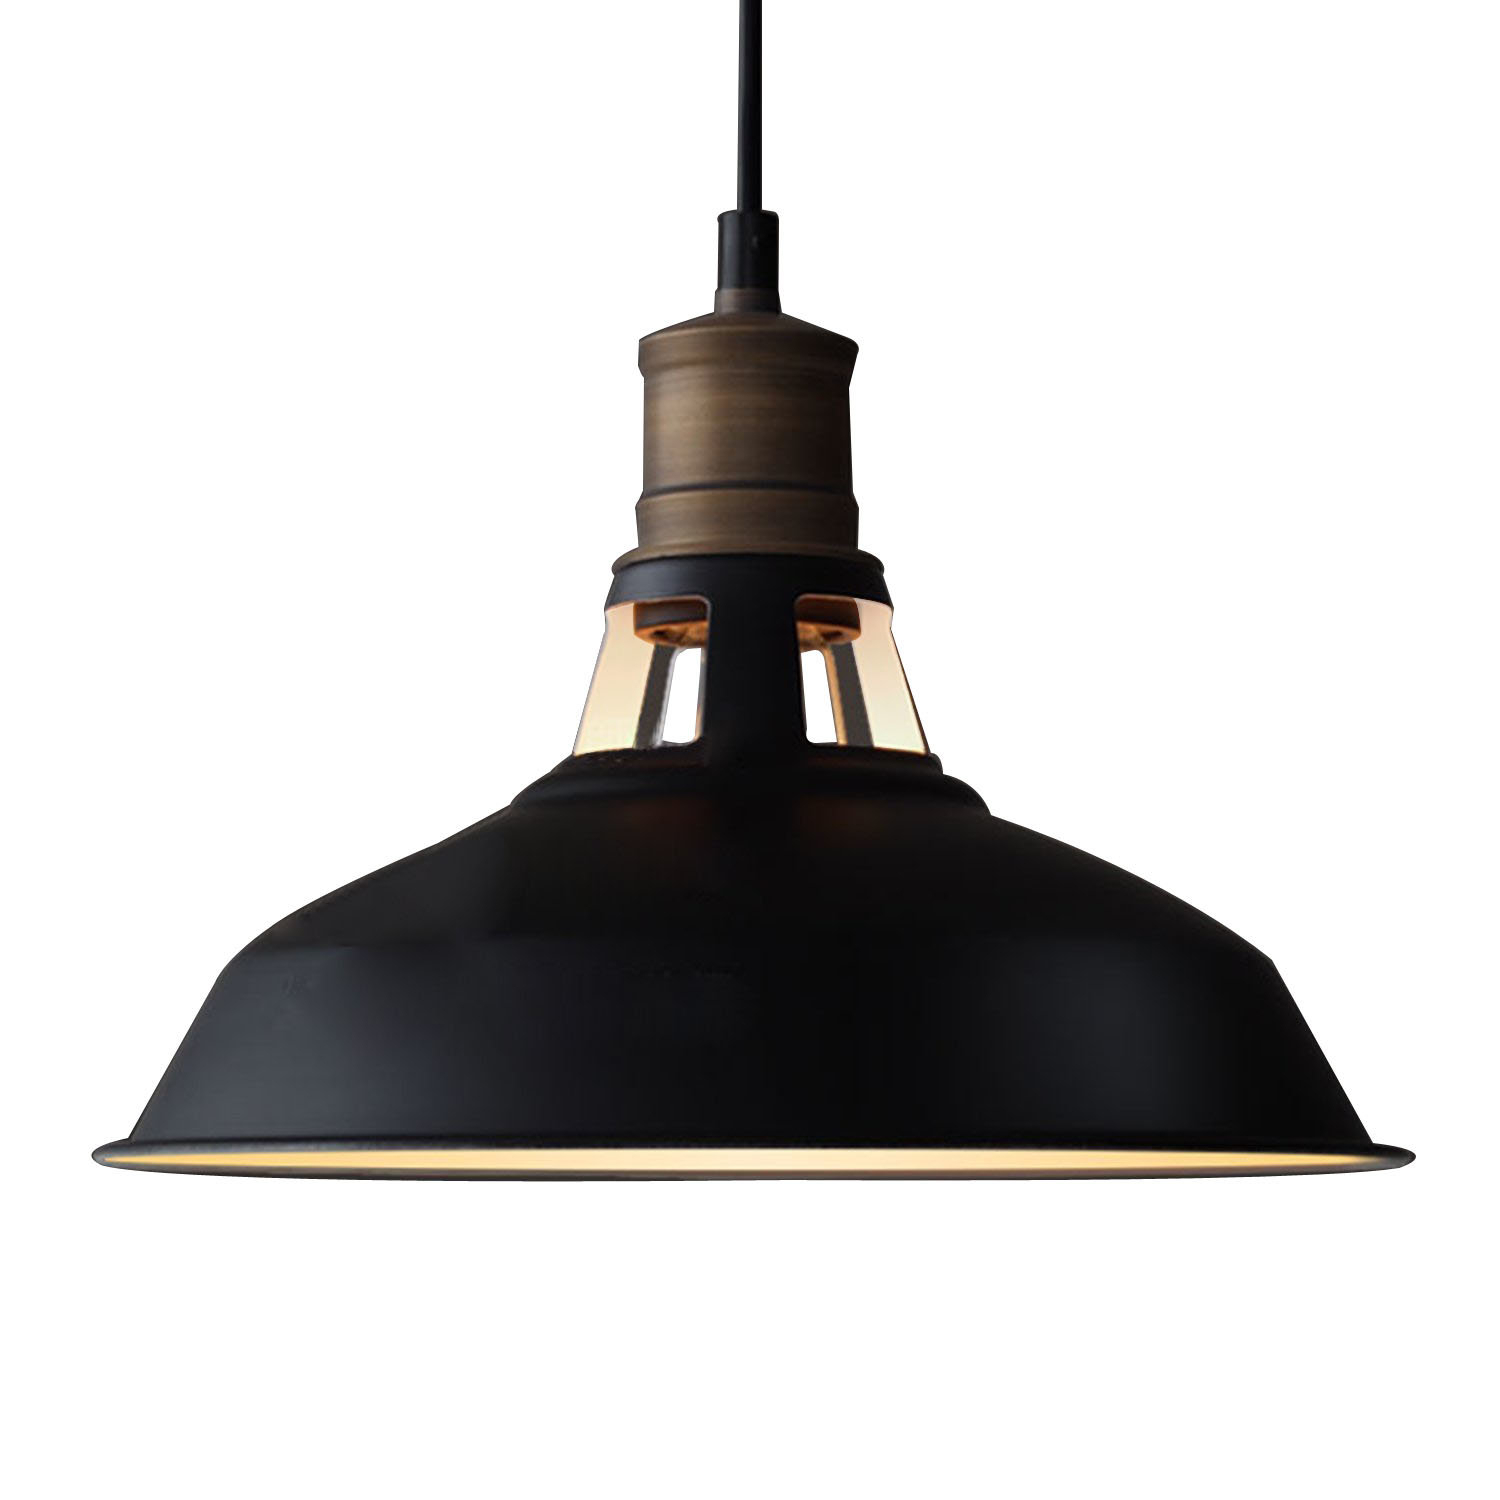 Williston Forge Aryan 1 Light Dome Pendant & Reviews Intended For Gattis 1 Light Dome Pendants (View 20 of 30)